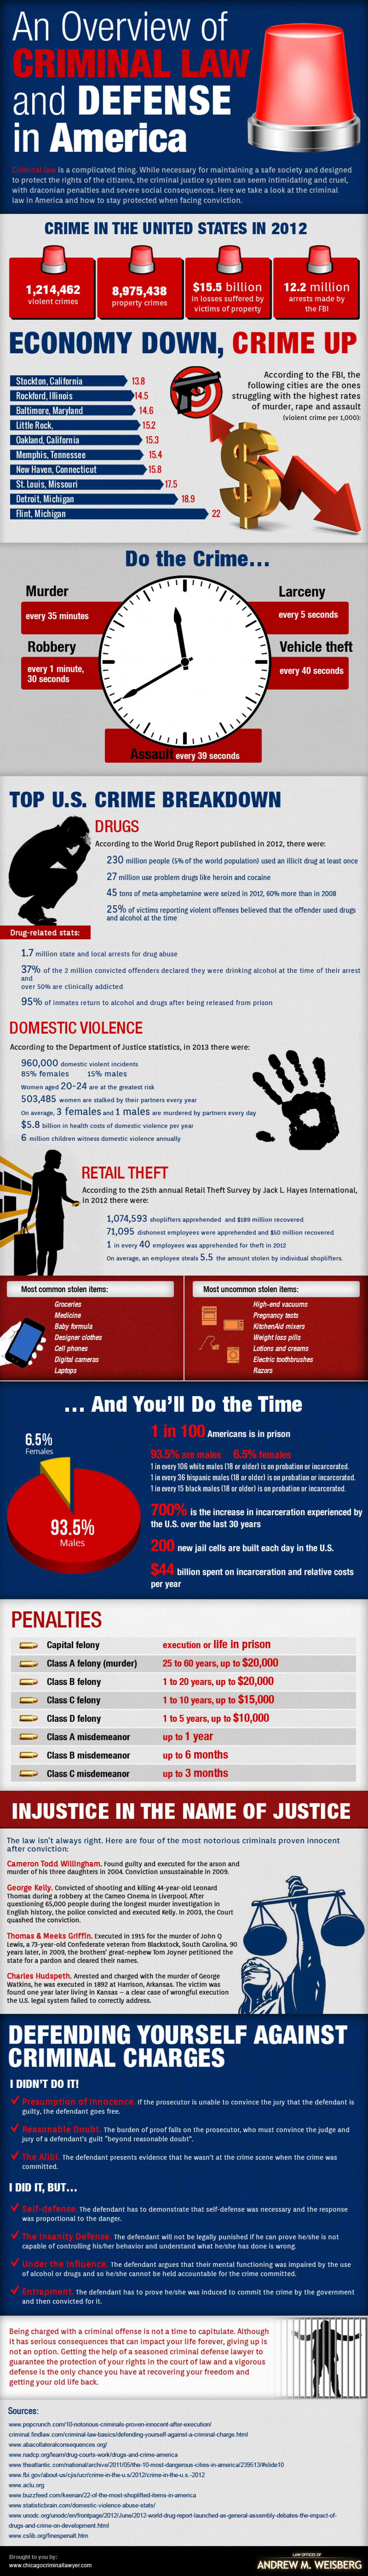 An Overview of Criminal Law and Defense in America  Infographic